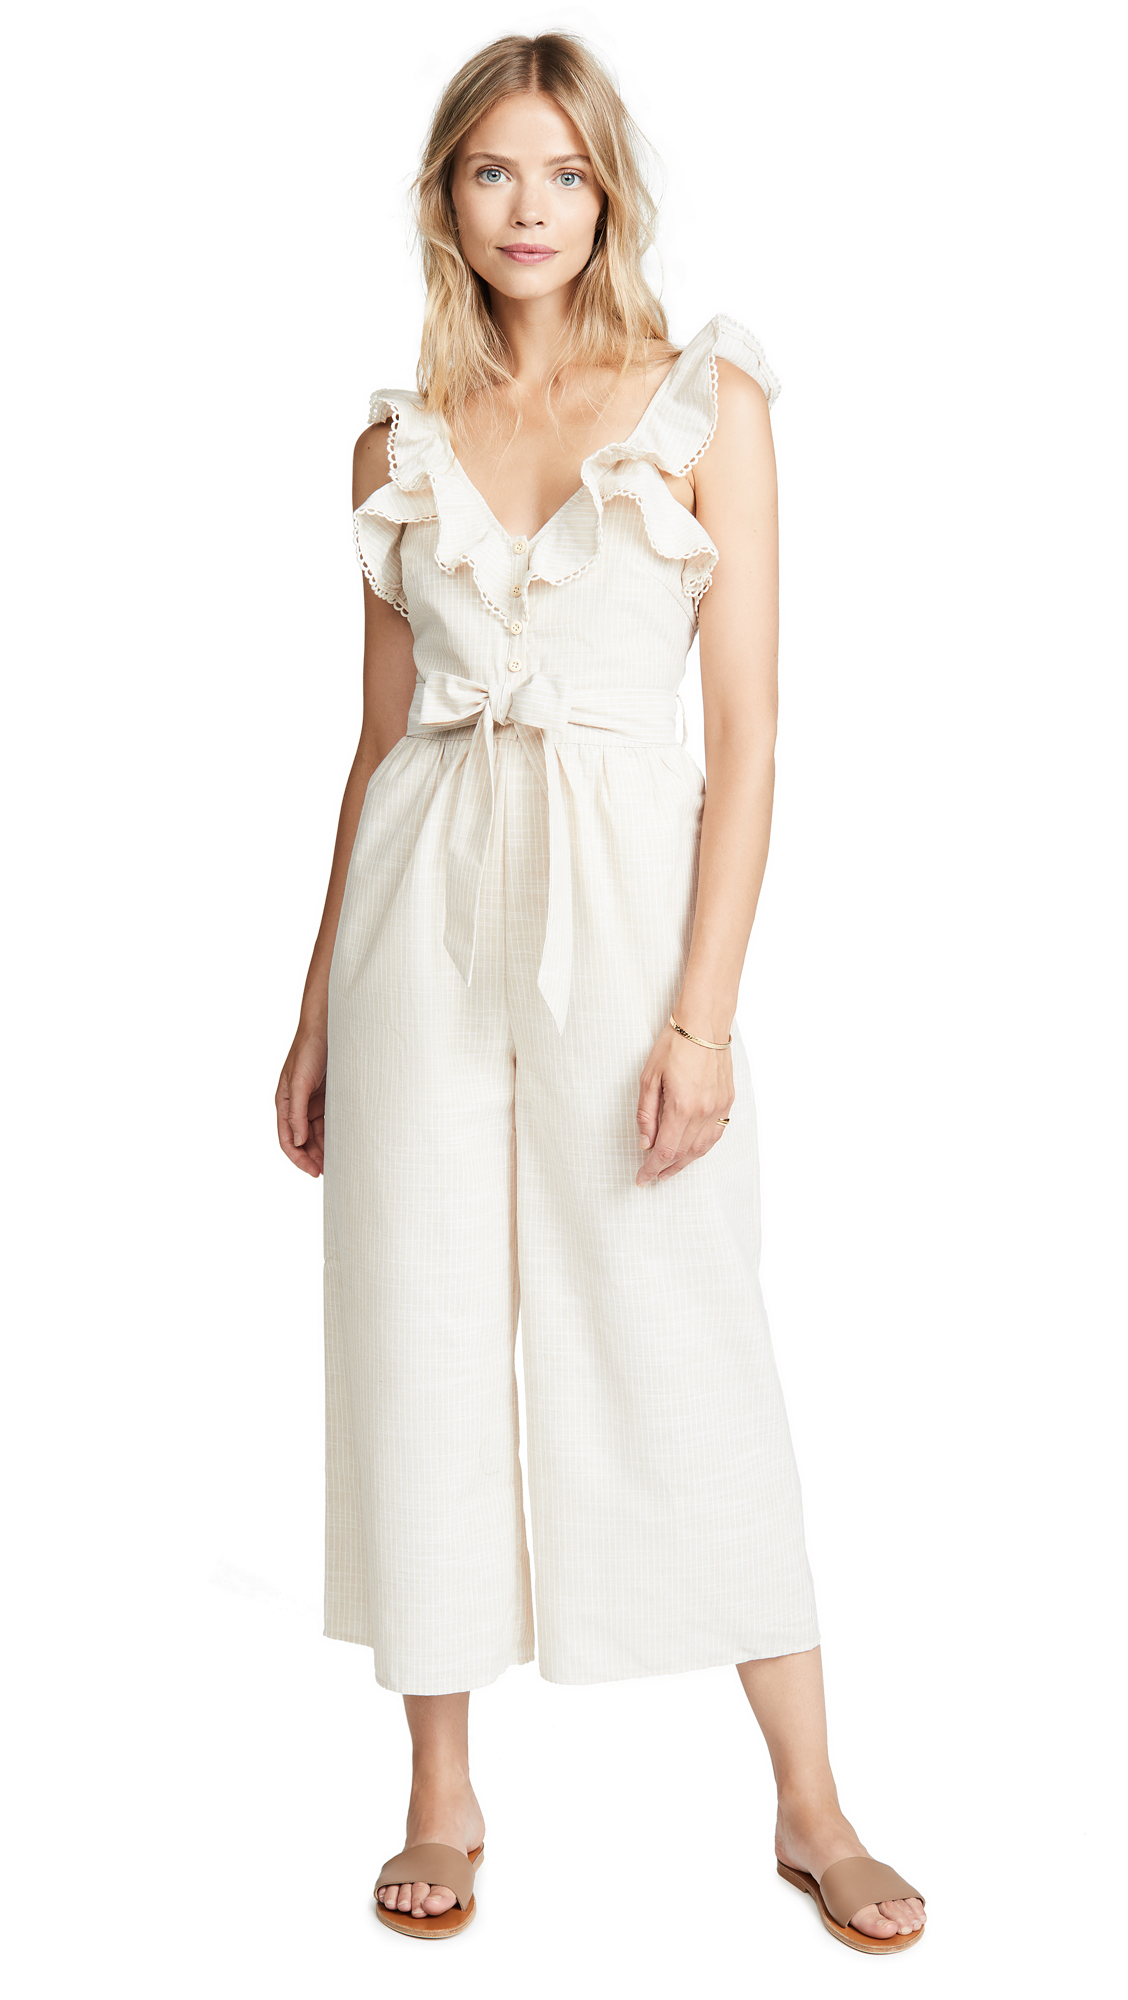 THE LINE UP Ruffle Jumpsuit in Cream Beige